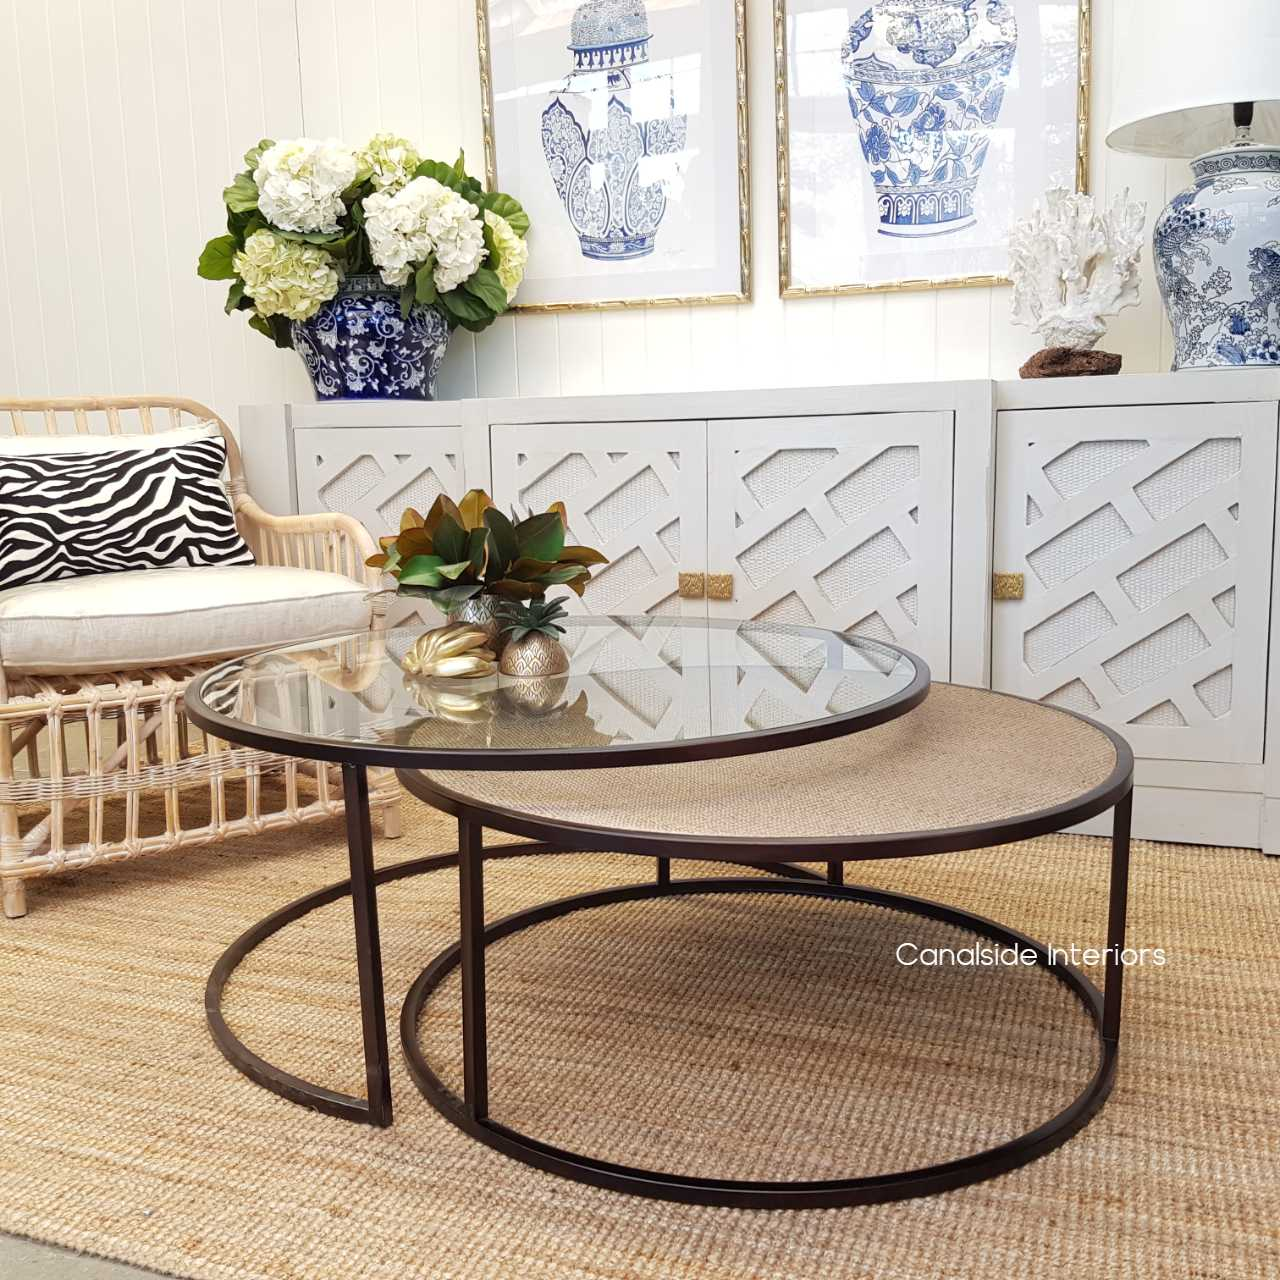 Knox Rattan Plantation Nesting Coffee Table, TABLES Coffee Tables, LIVING Room, LIVING Coffee & Side Tables, PLANTATION STYLE, Brass, British Colonial, Glass, Island Style